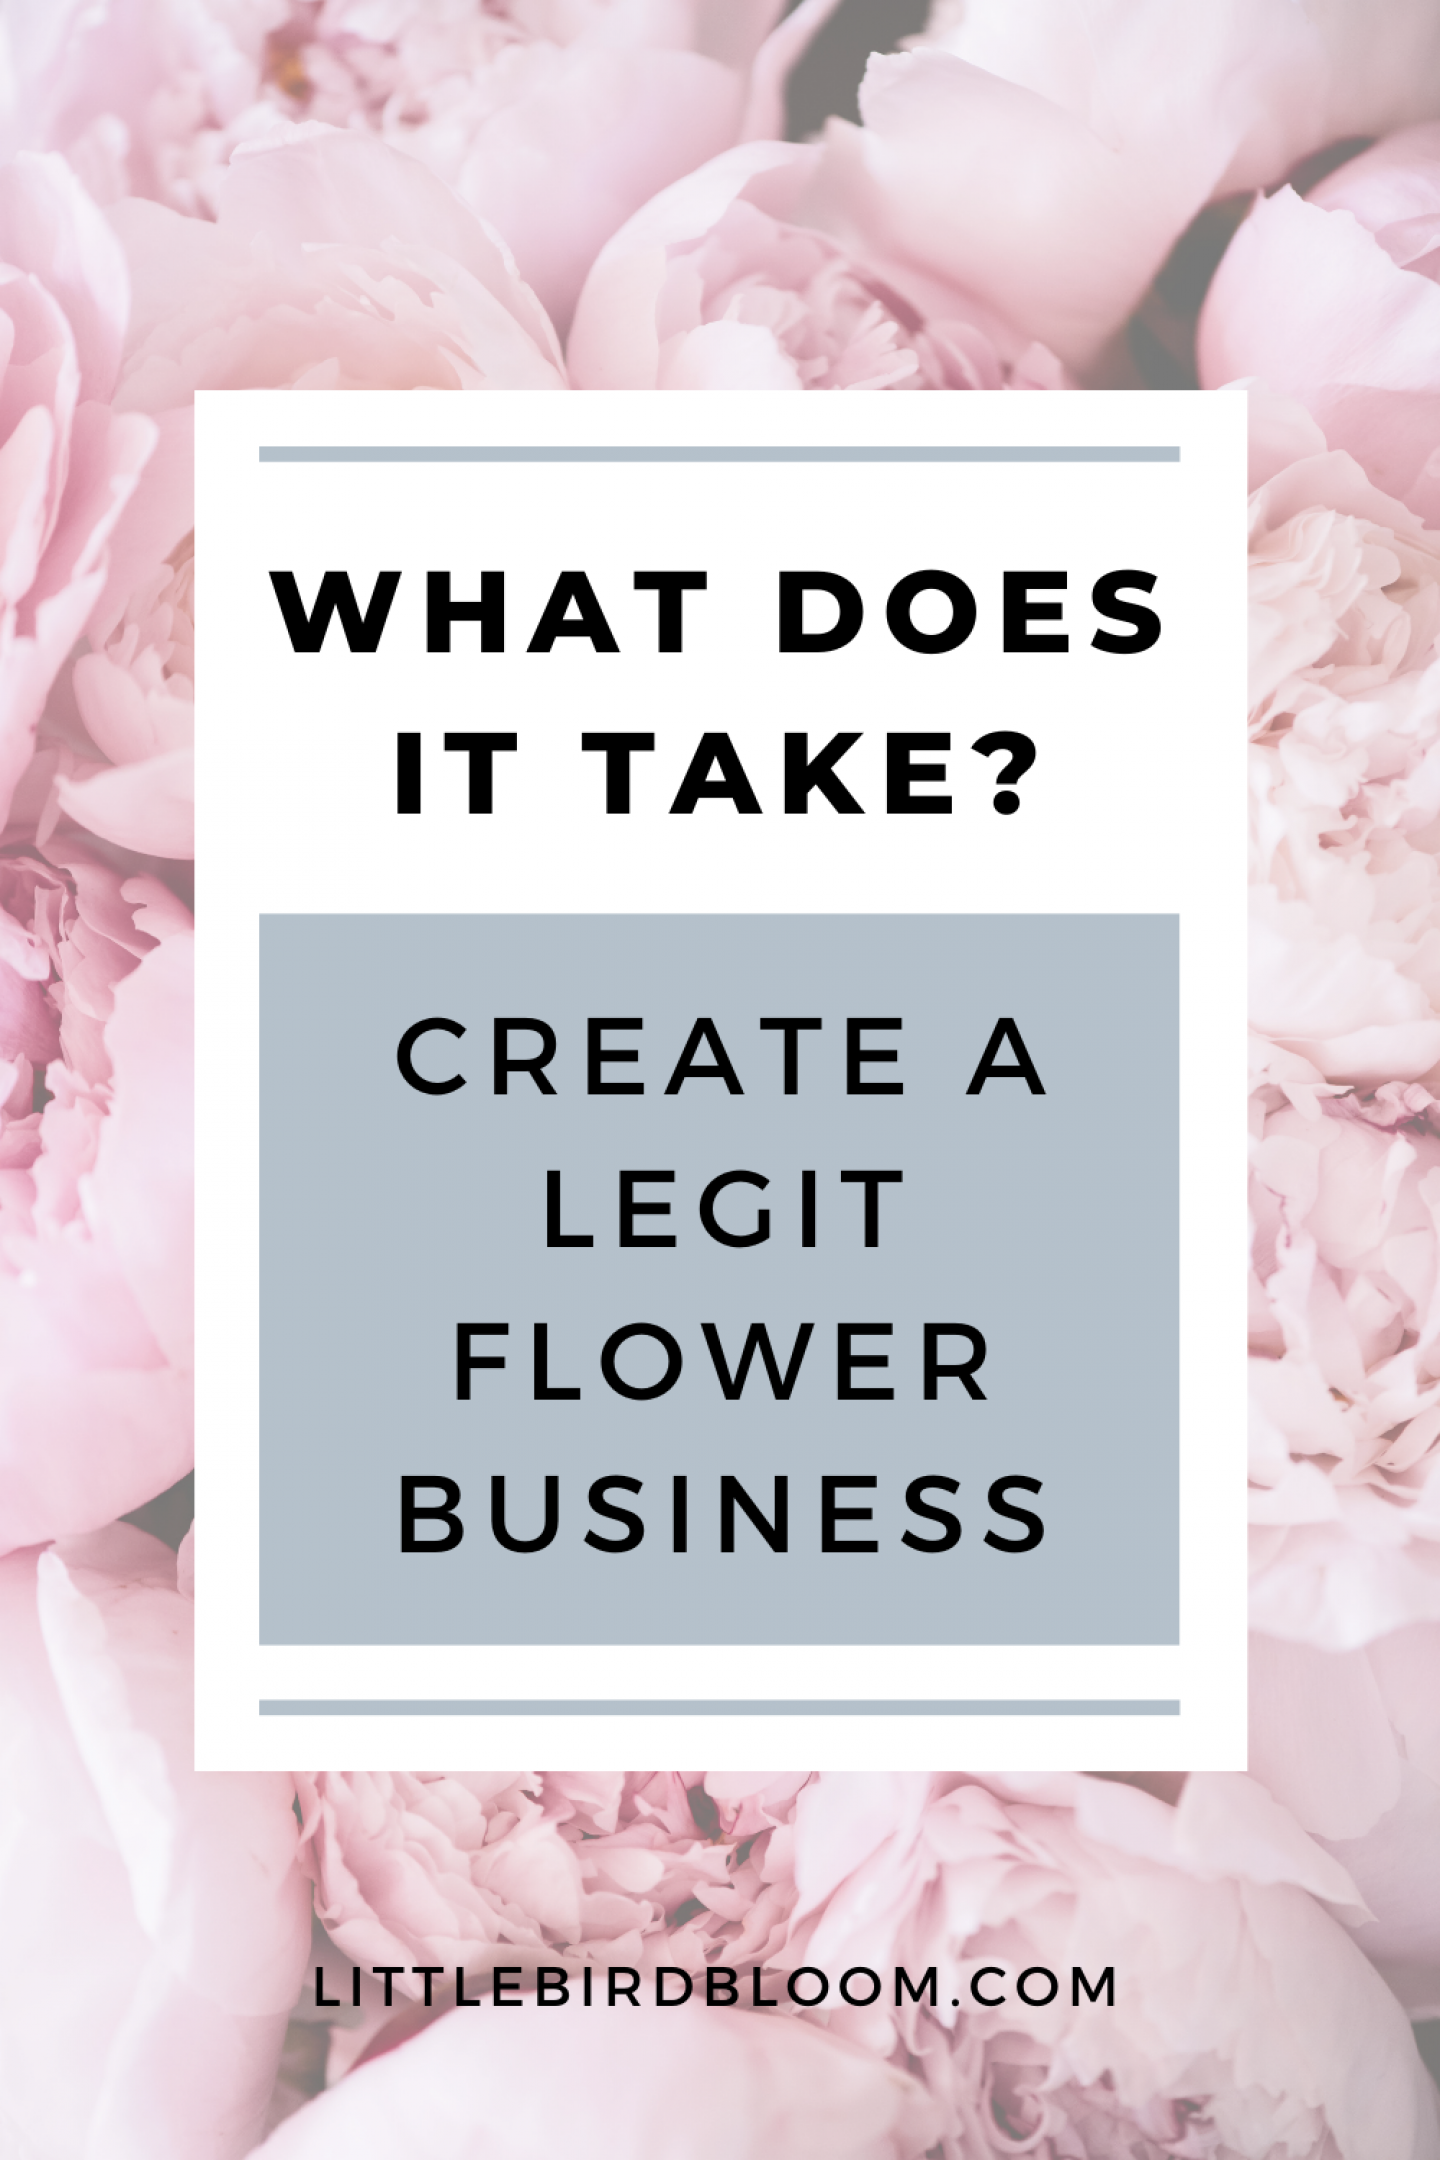 podcast for floral designers business and flowers (9)